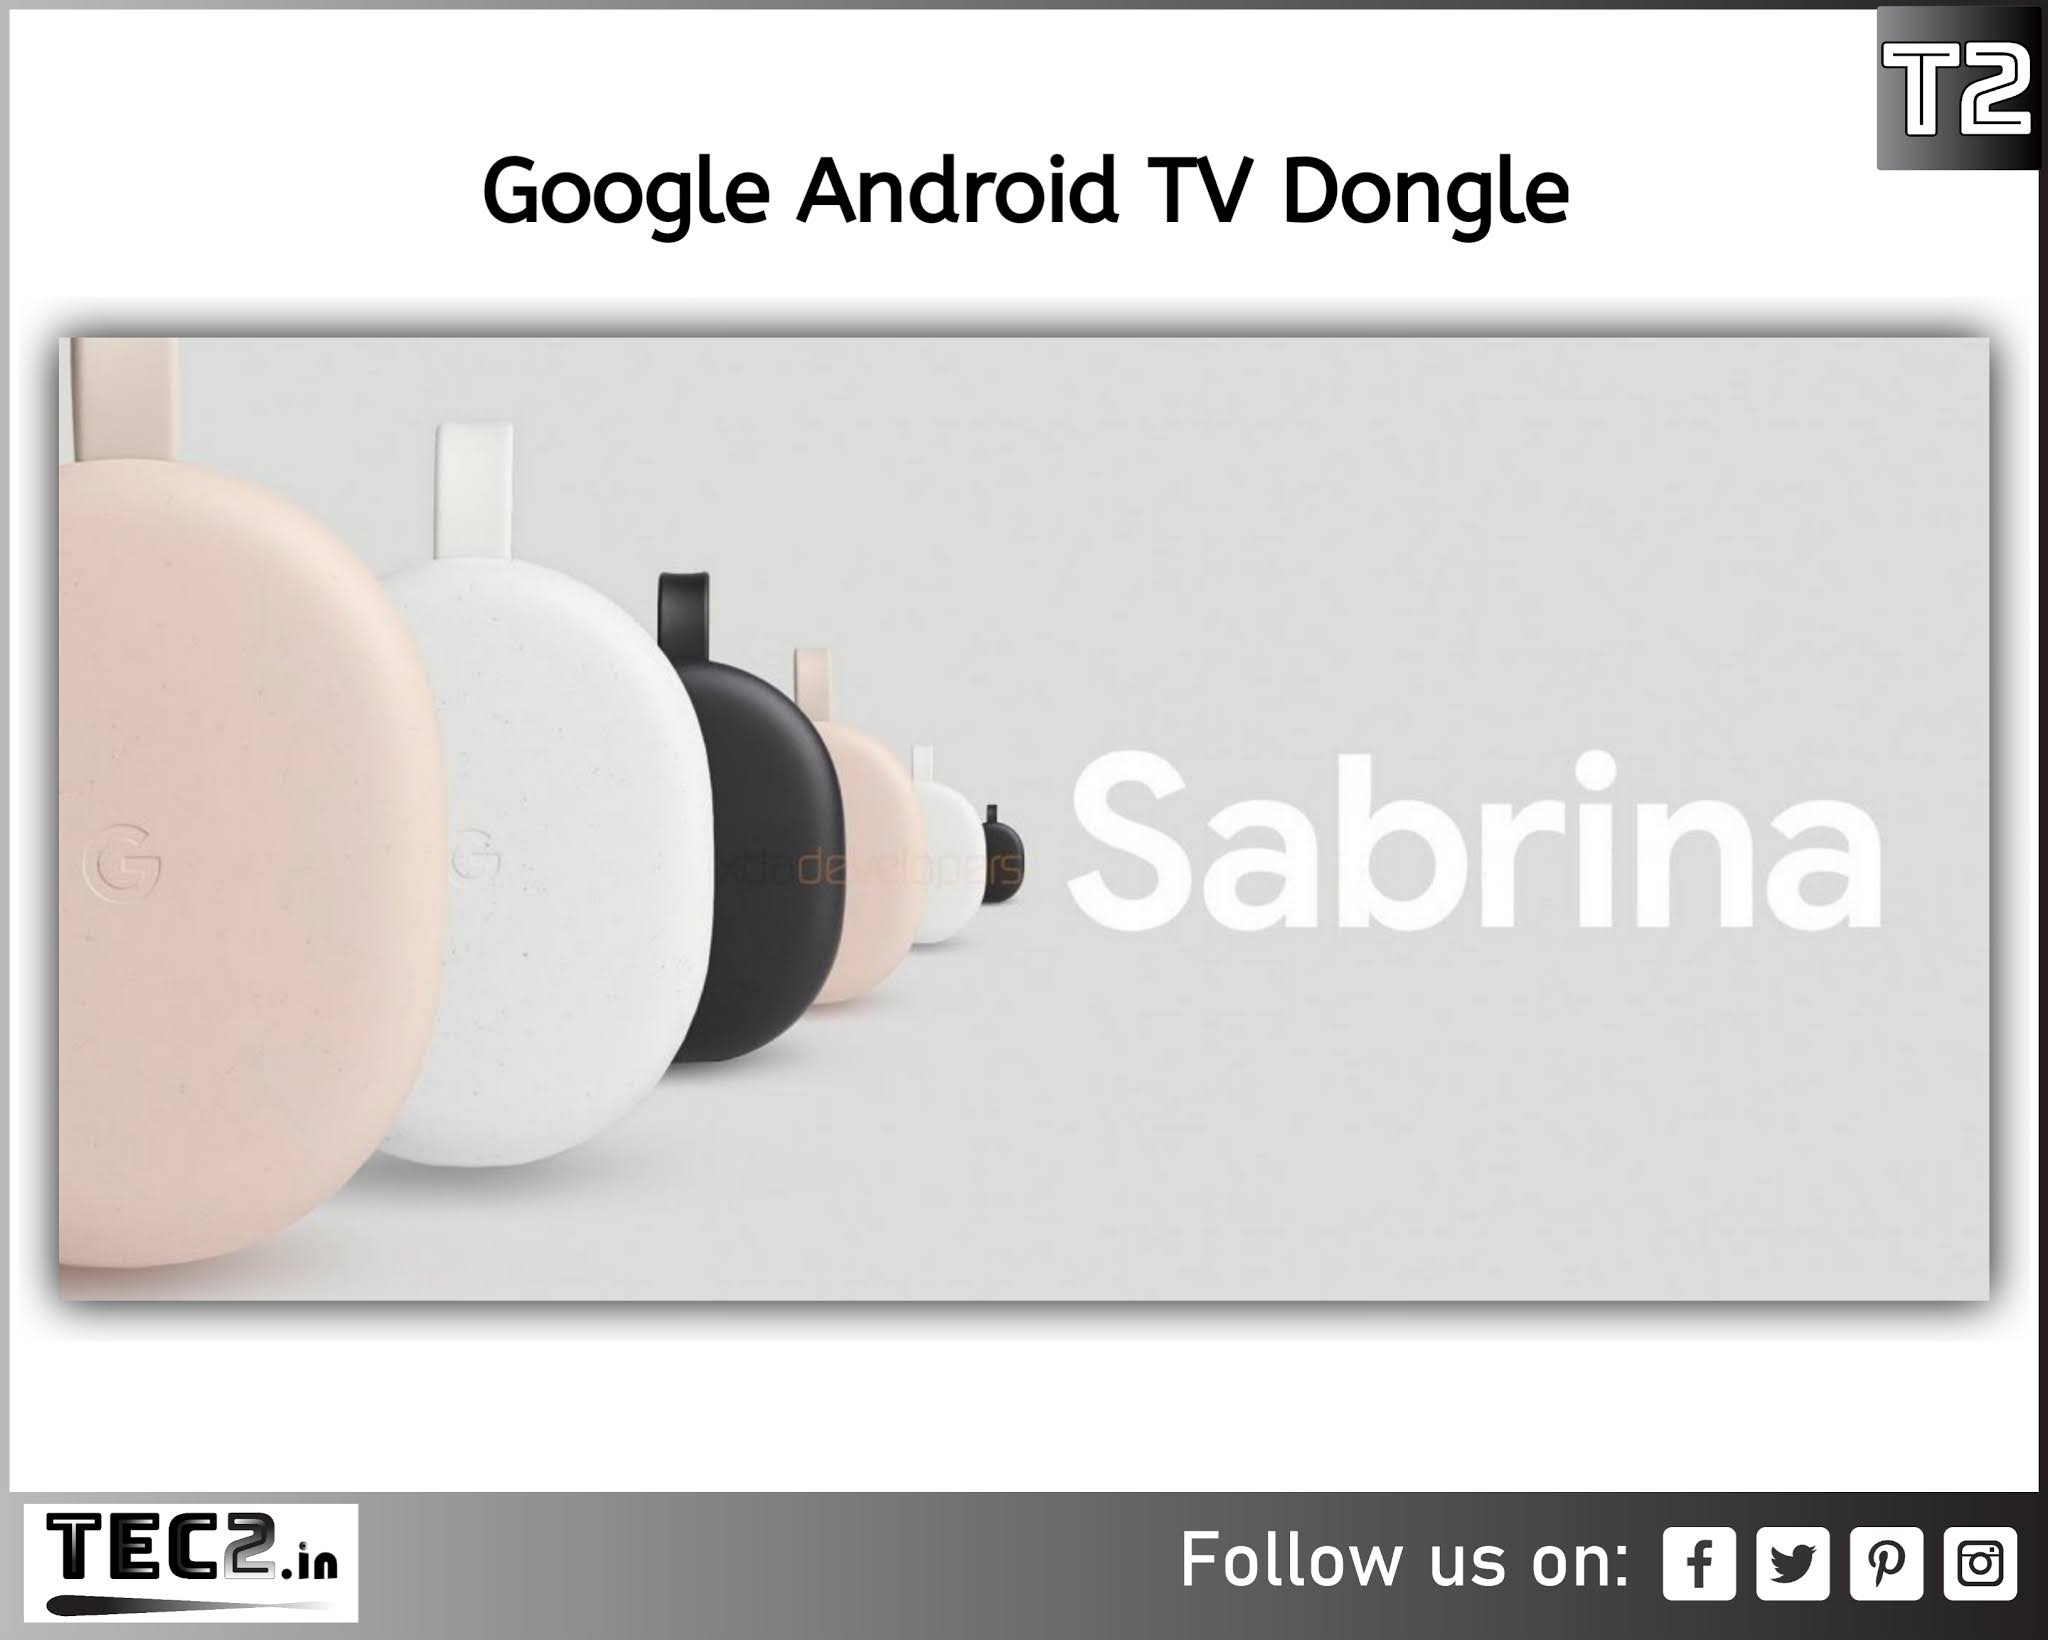 Google Android TV Dongle